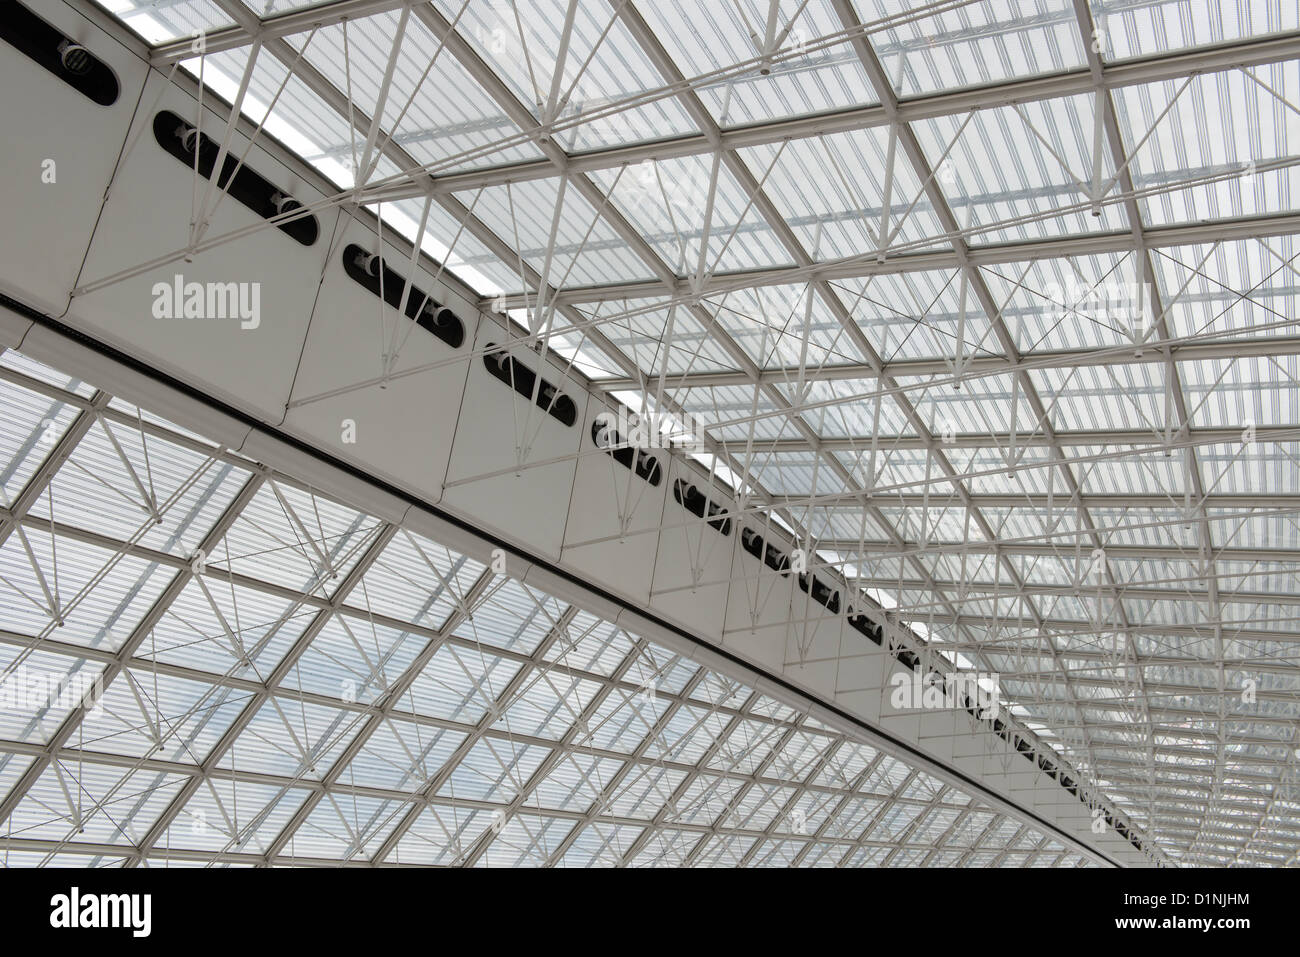 Steel and glass roof of terminal 2. Charles De Gaulle airport, Paris, France. - Stock Image